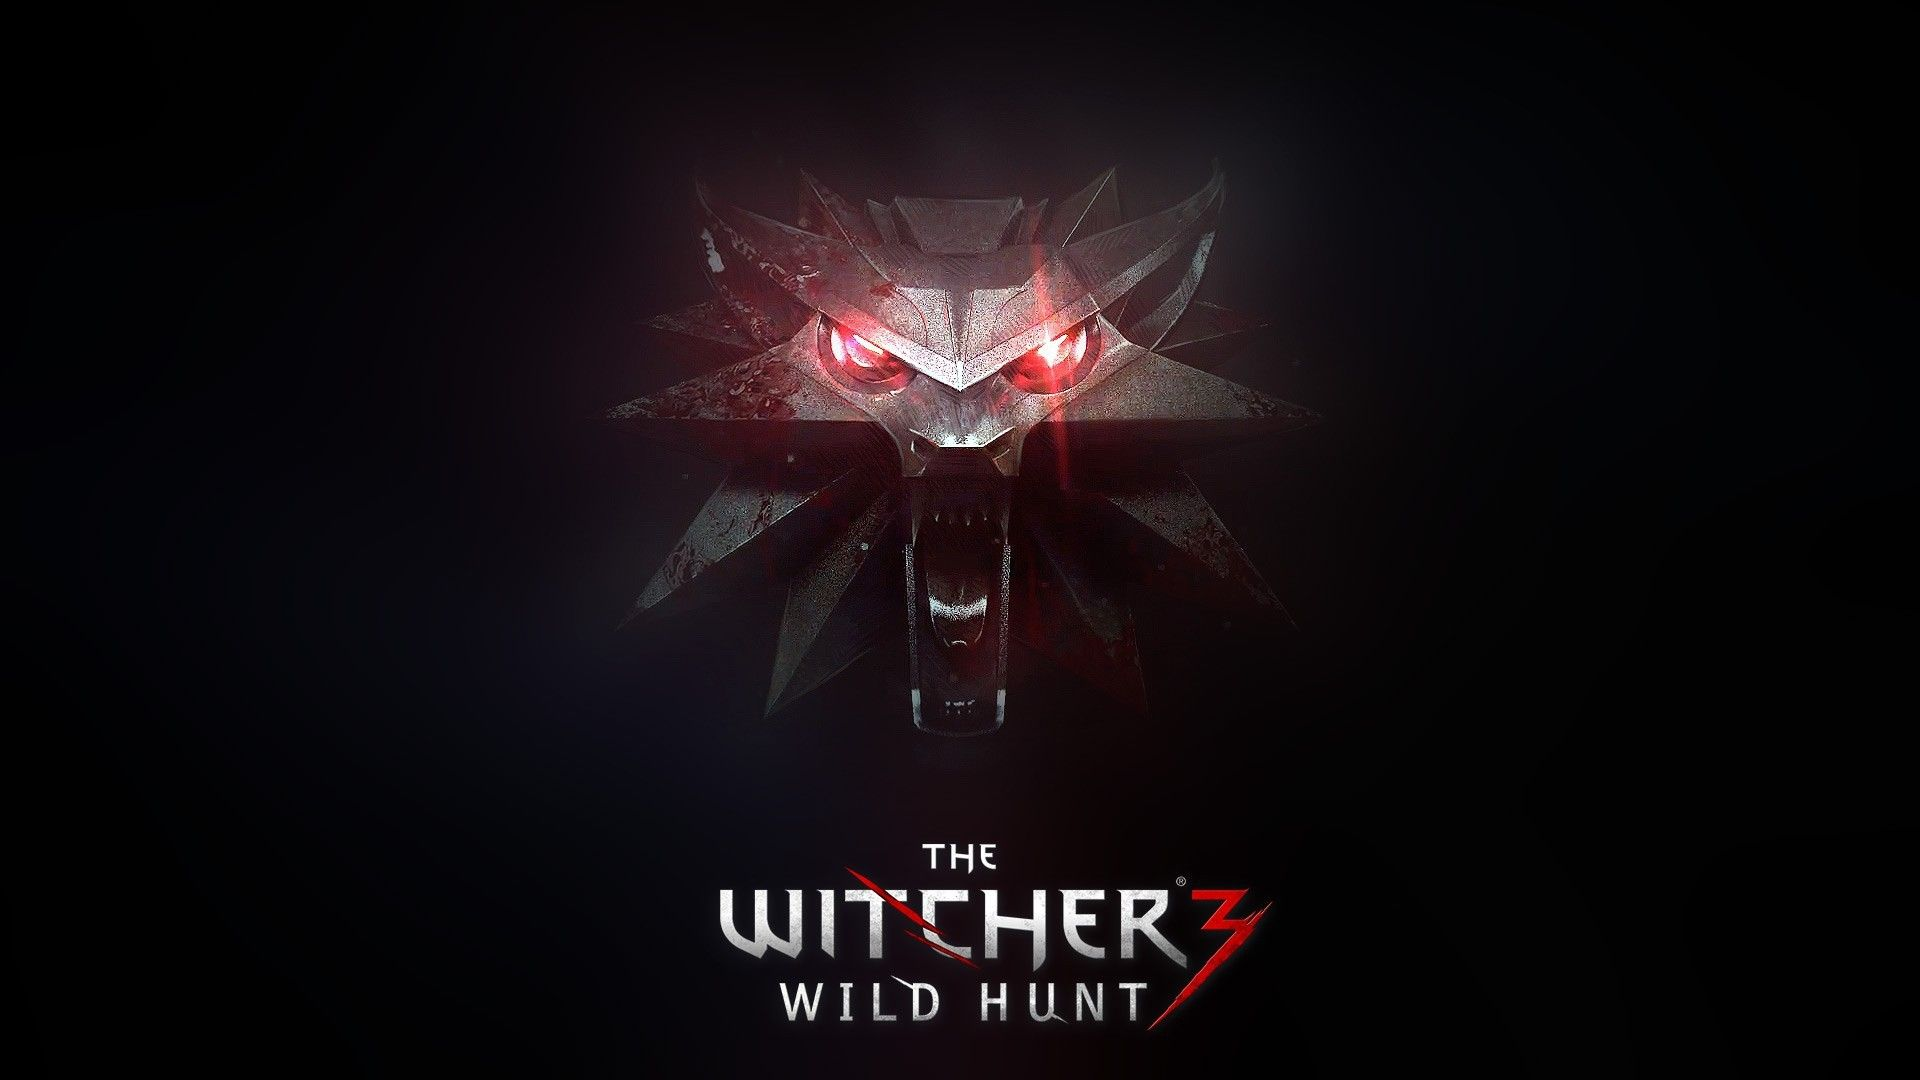 Rpg Medallion The Witcher 3 Wild Hunt 1920x1080 Medallion